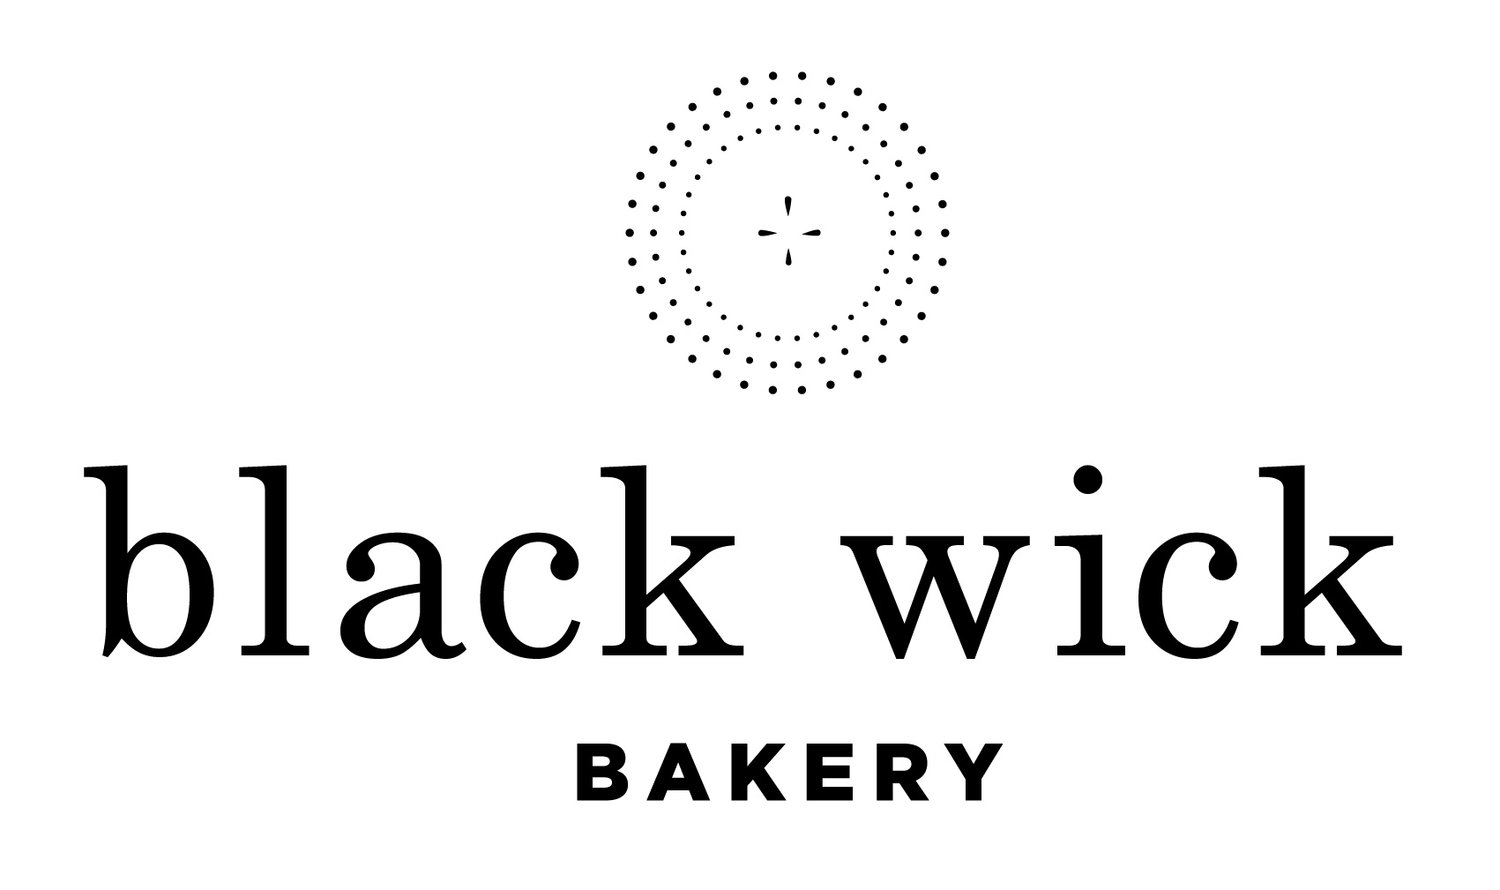 black wick bakery